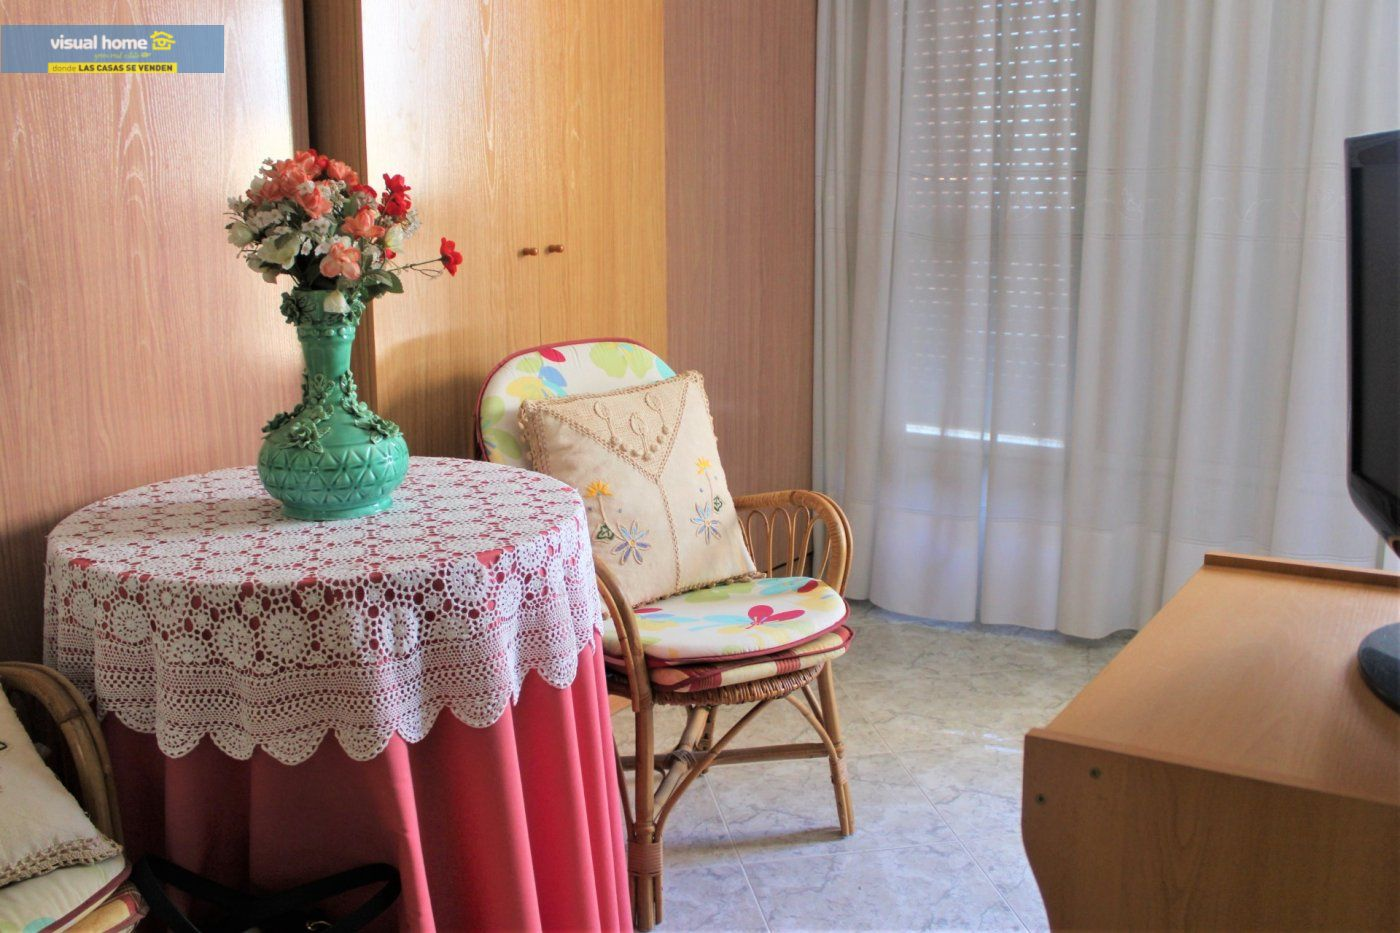 APARTAMENTO CON VISTAS AL MAR IDEAL PARA VACACIONES EN ZONA LEVANTE! PARKING Y PISCINA!!! 11